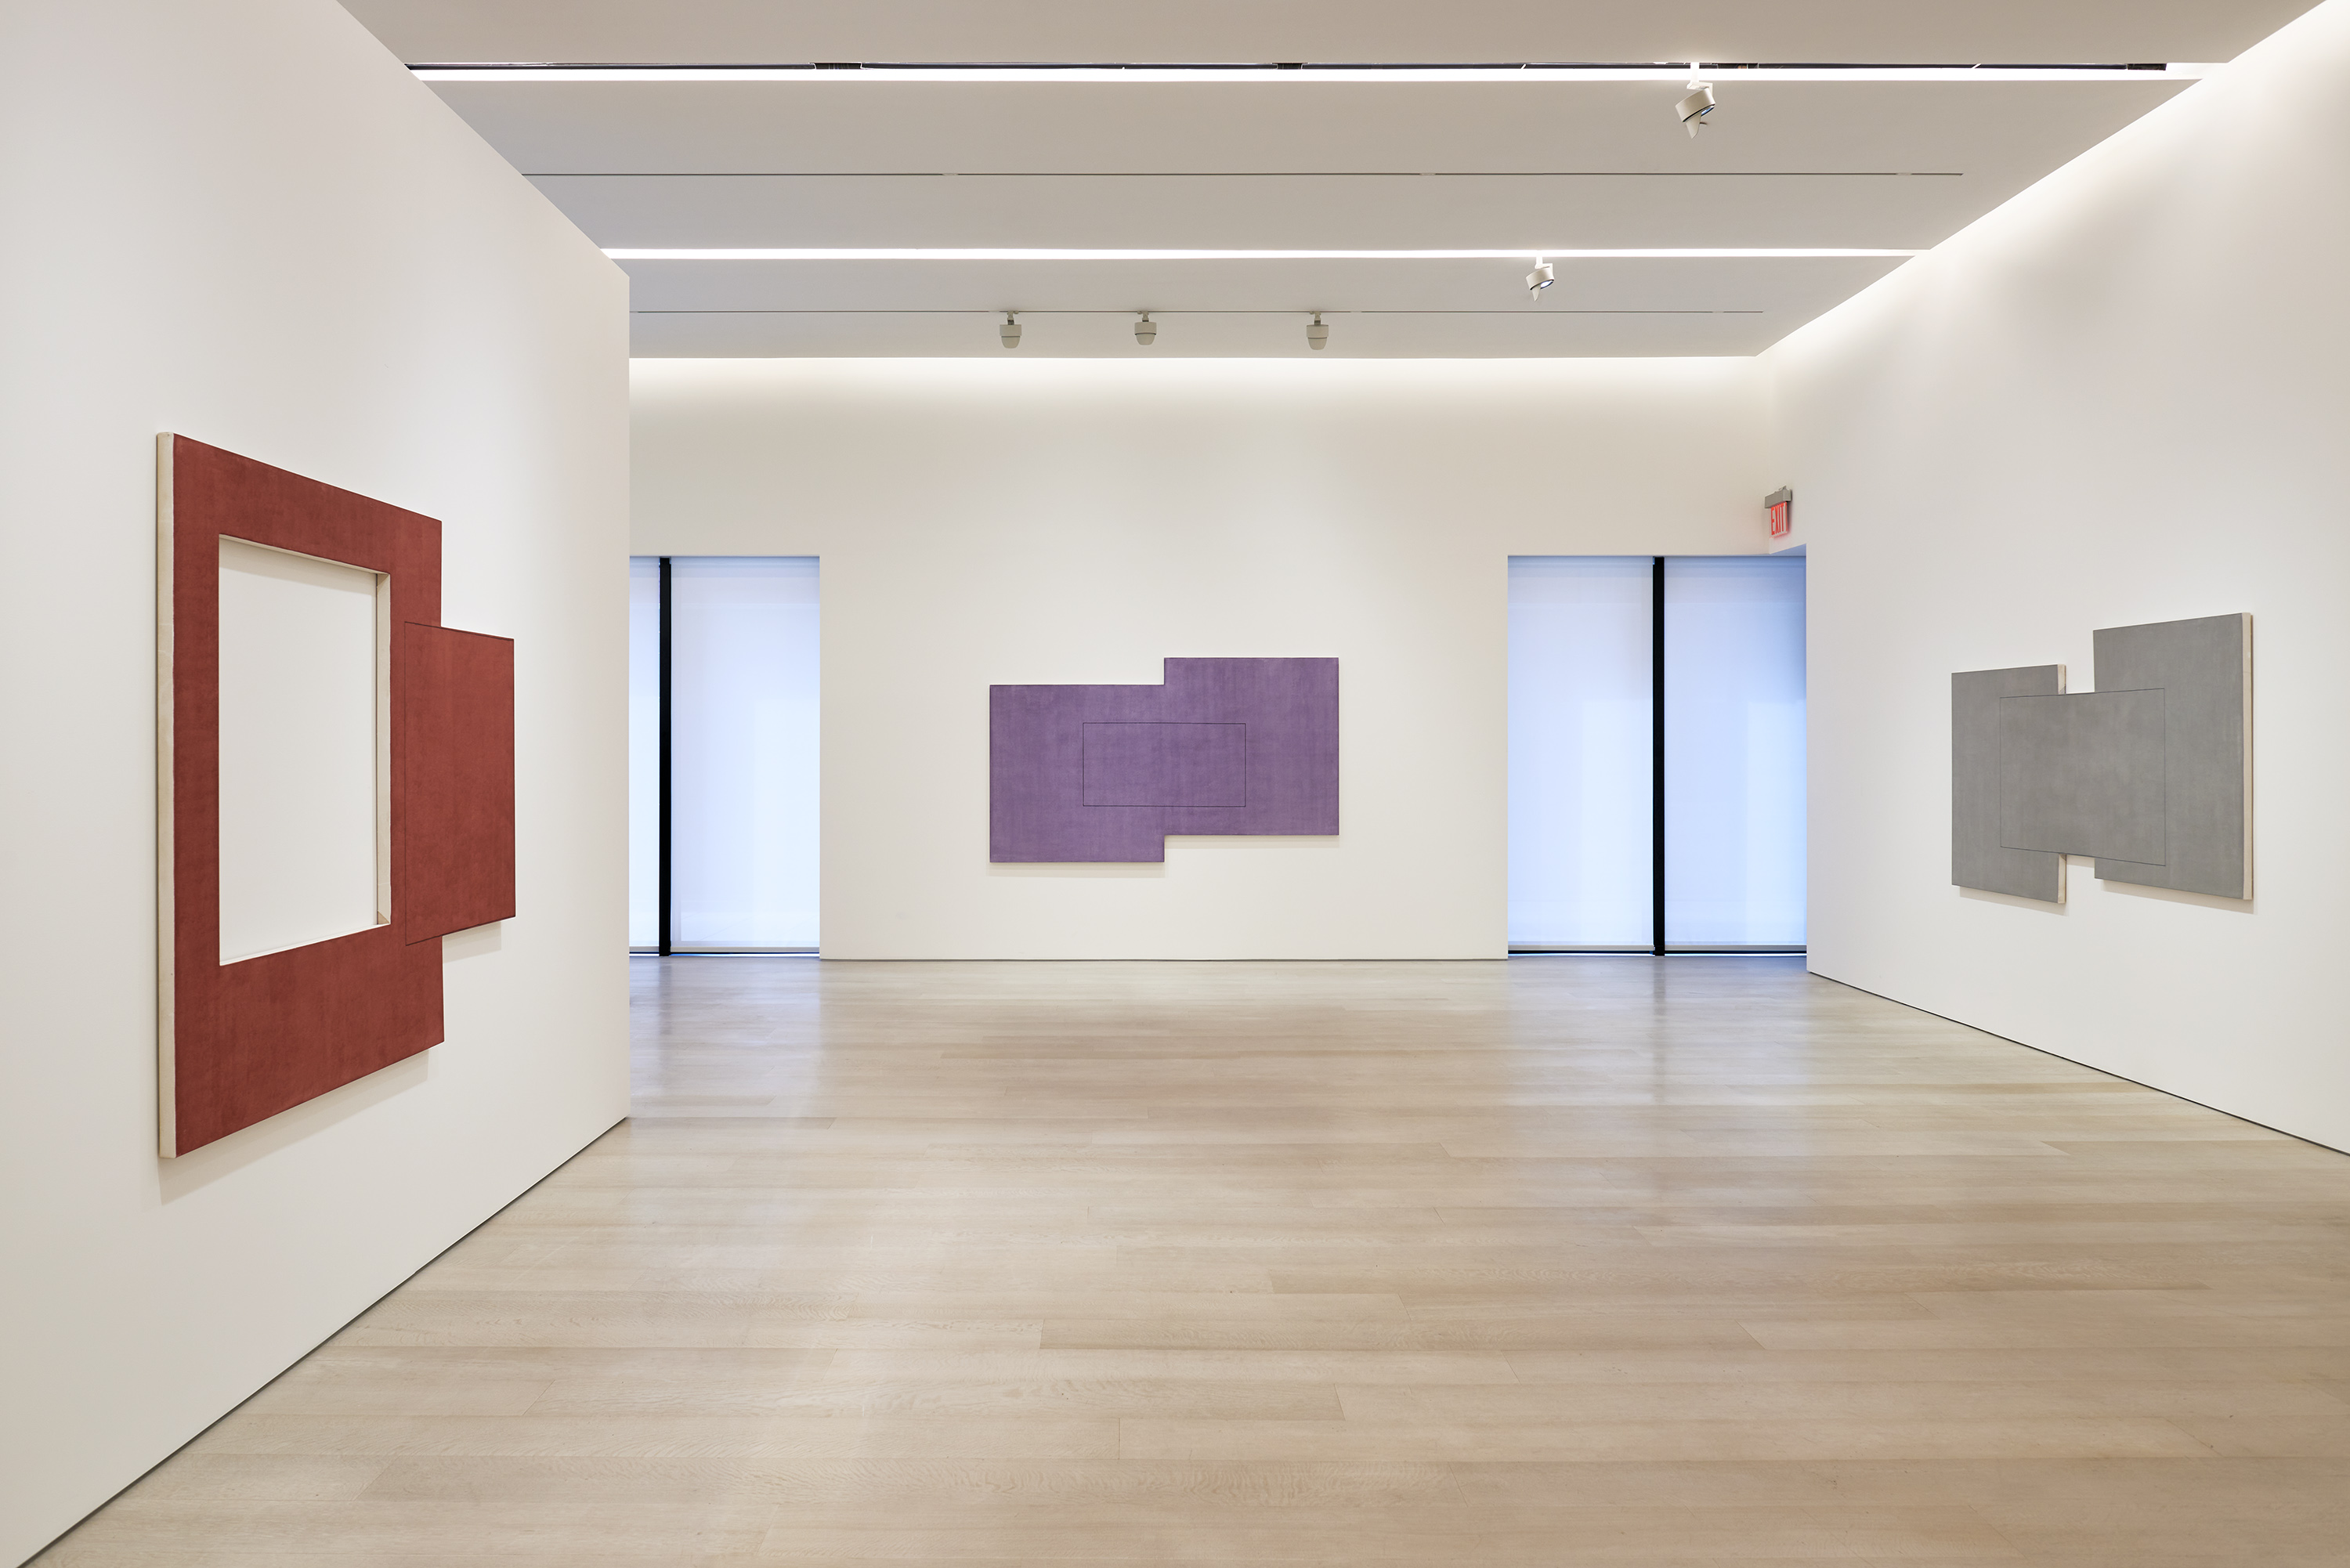 Installation view of Robert Mangold: Paintings 2017 - 2019 540 West 25th Street, New York September 18 – October 24 , 2020 Photography courtesy of Pace Gallery